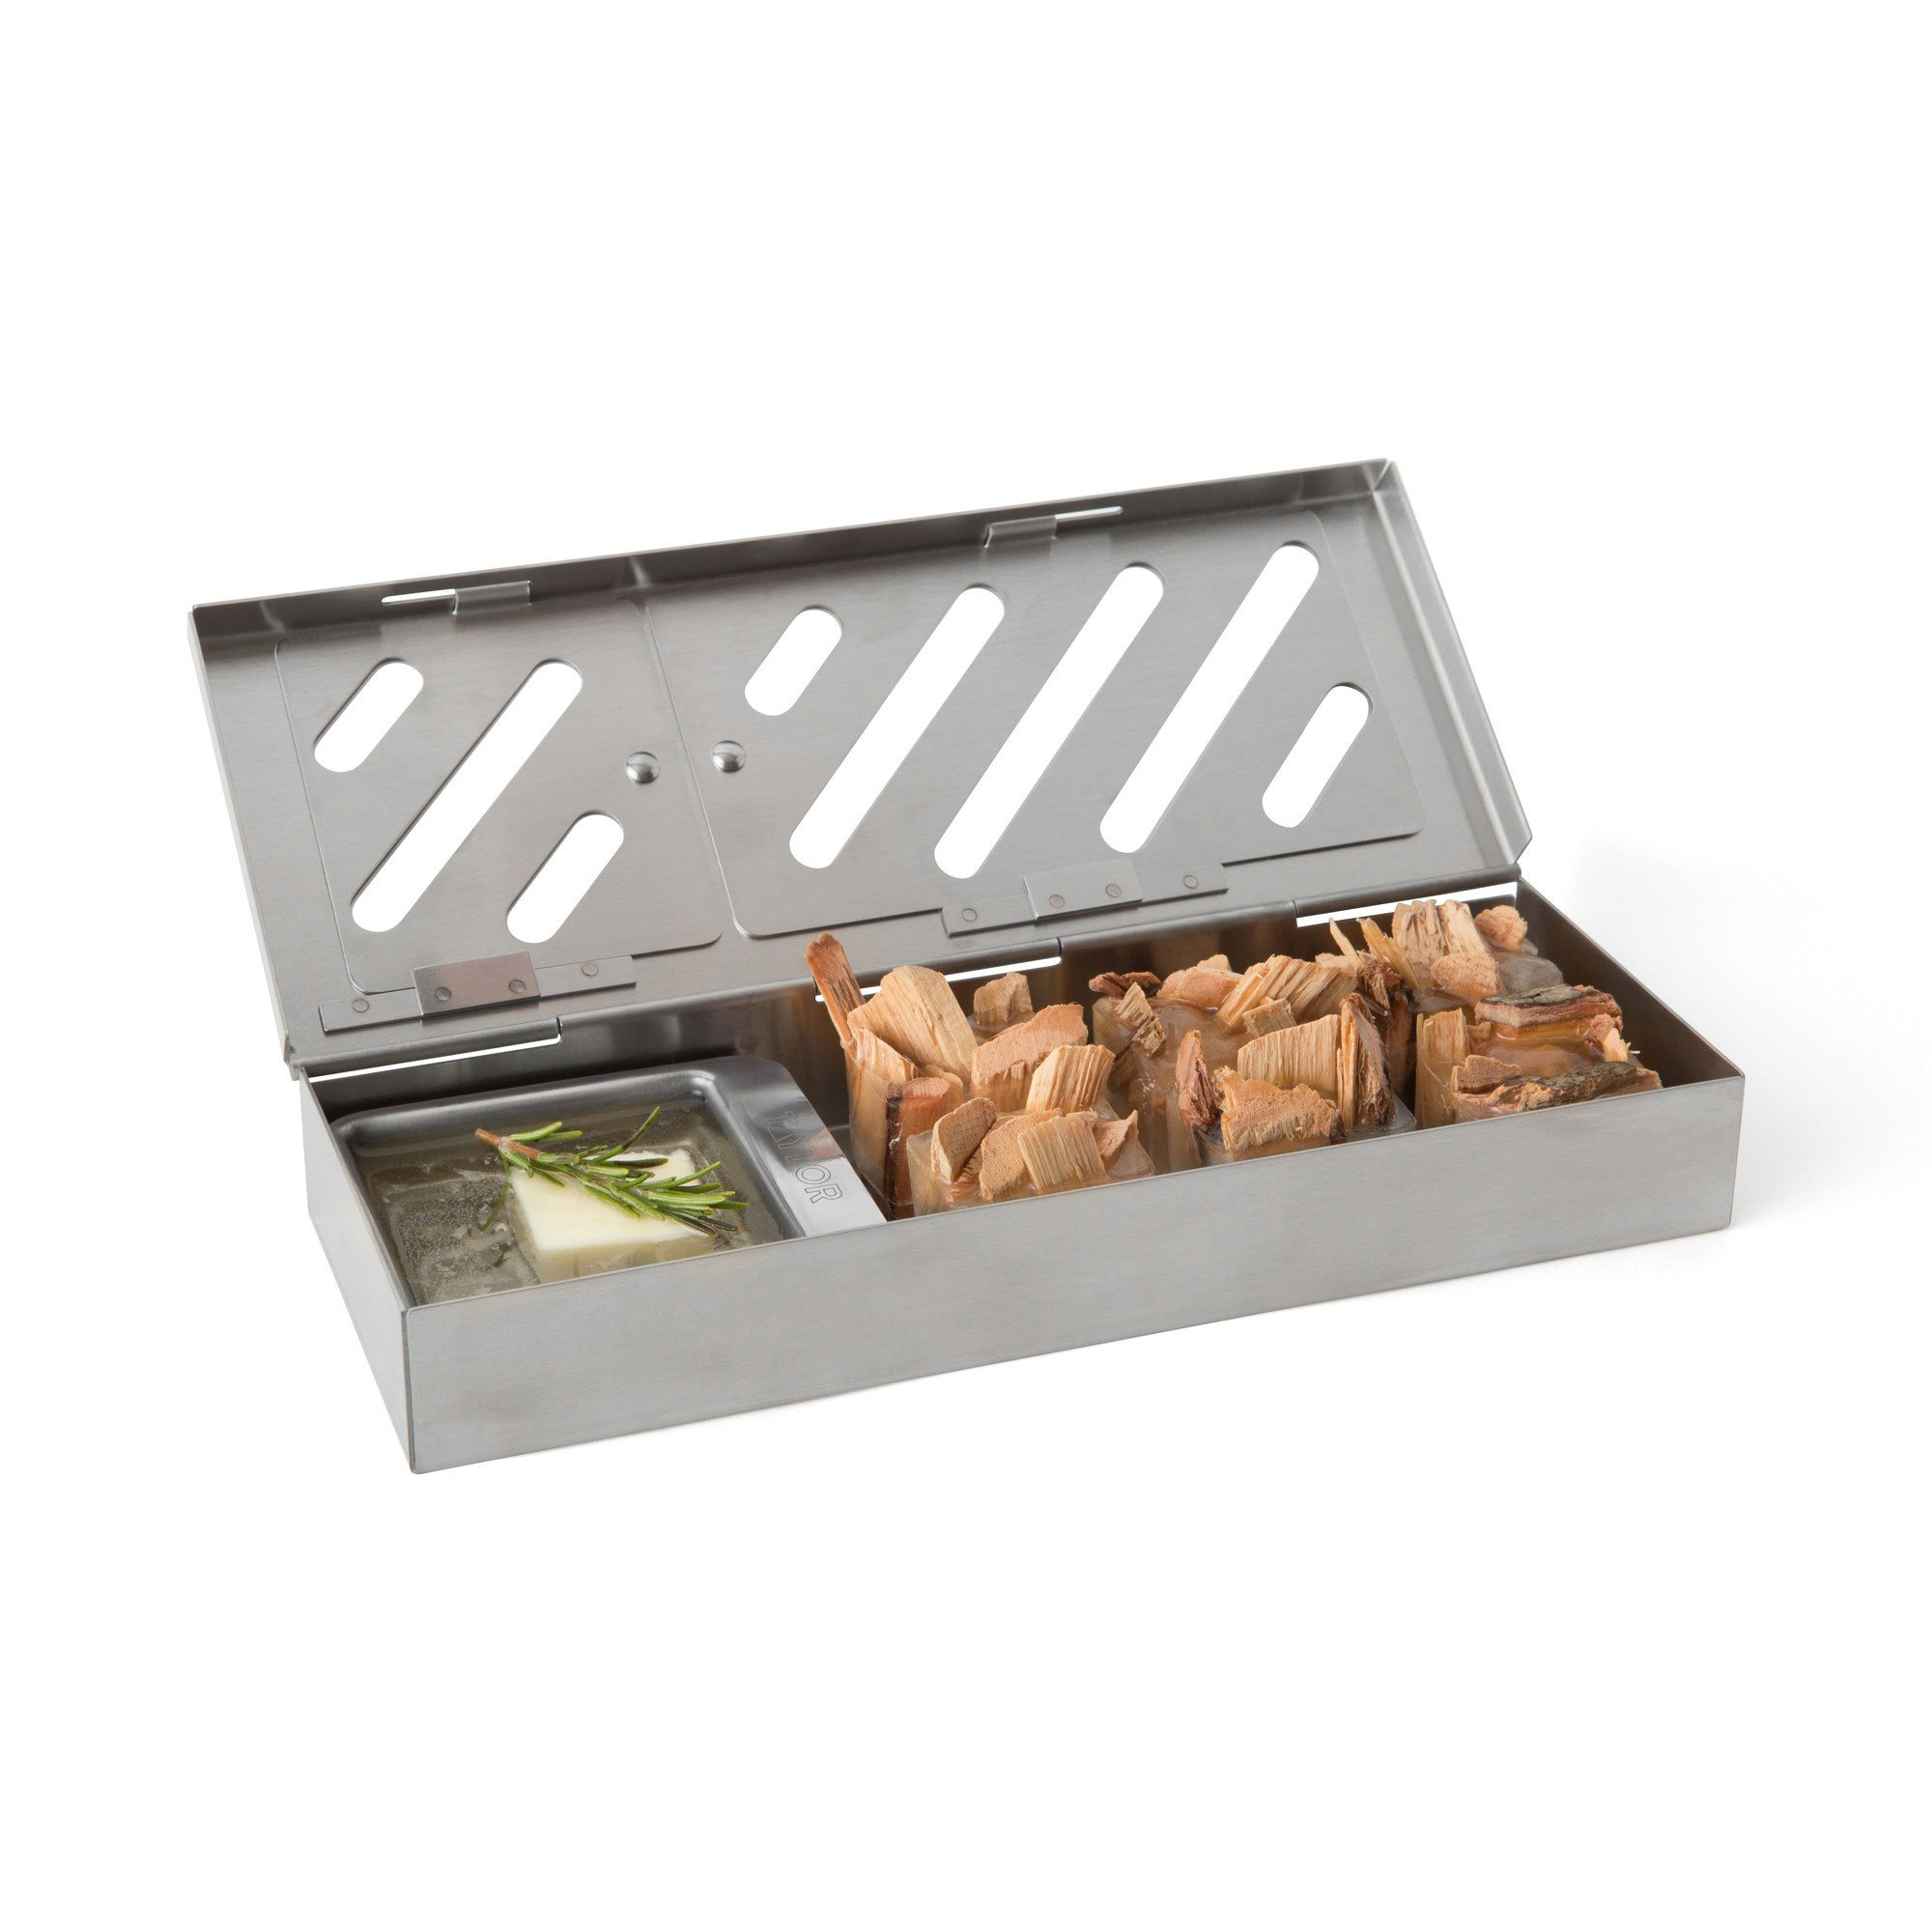 Taylor Precision Products 849GW Durable Grill Smoker Box (3 Piece), 0 by Taylor Precision Products (Image #7)